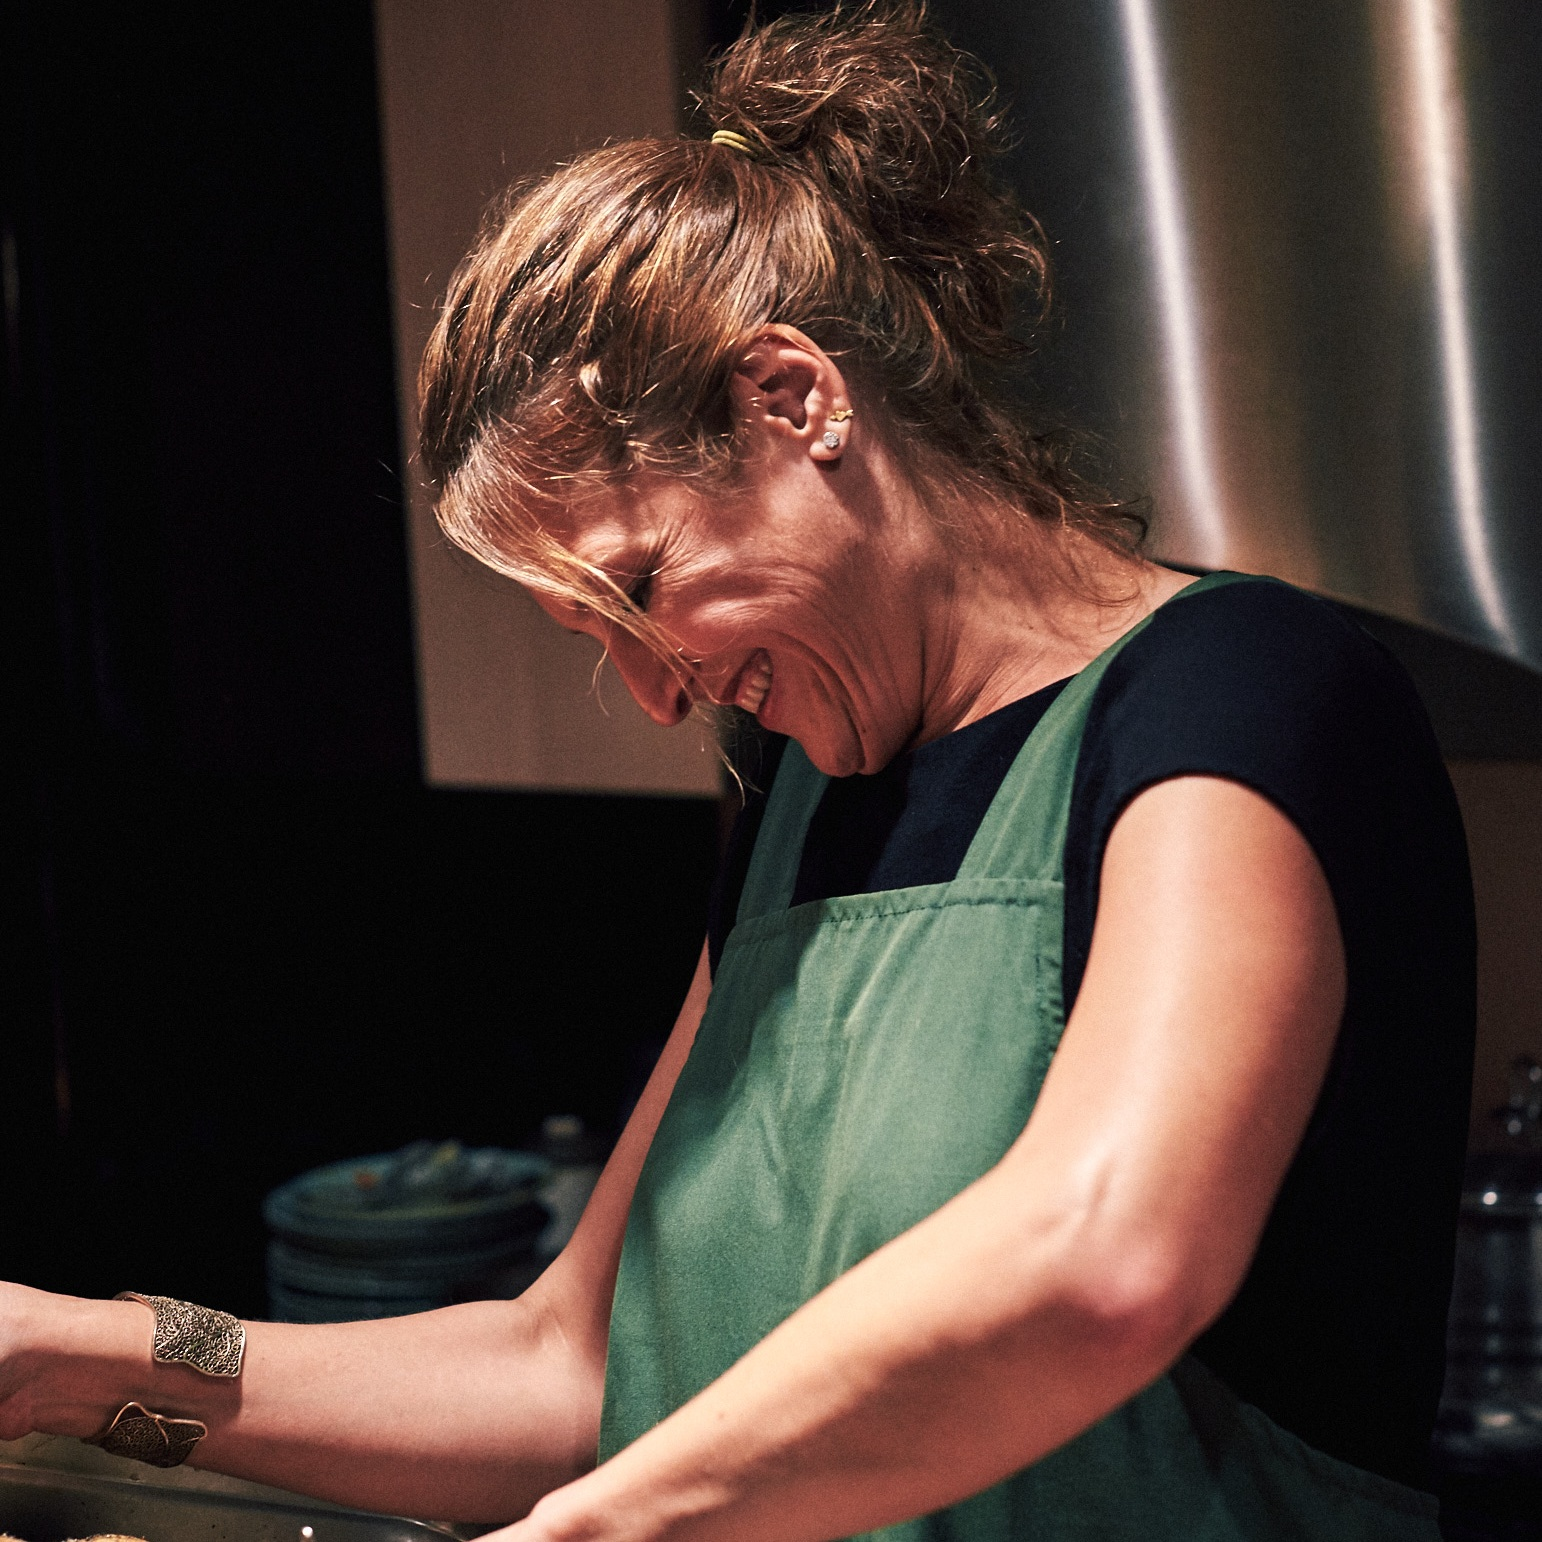 Hannah Goldberg is smiling in profile. Her brown hair is in a ponytail and she is wearing a green apron over a black t-shirt.